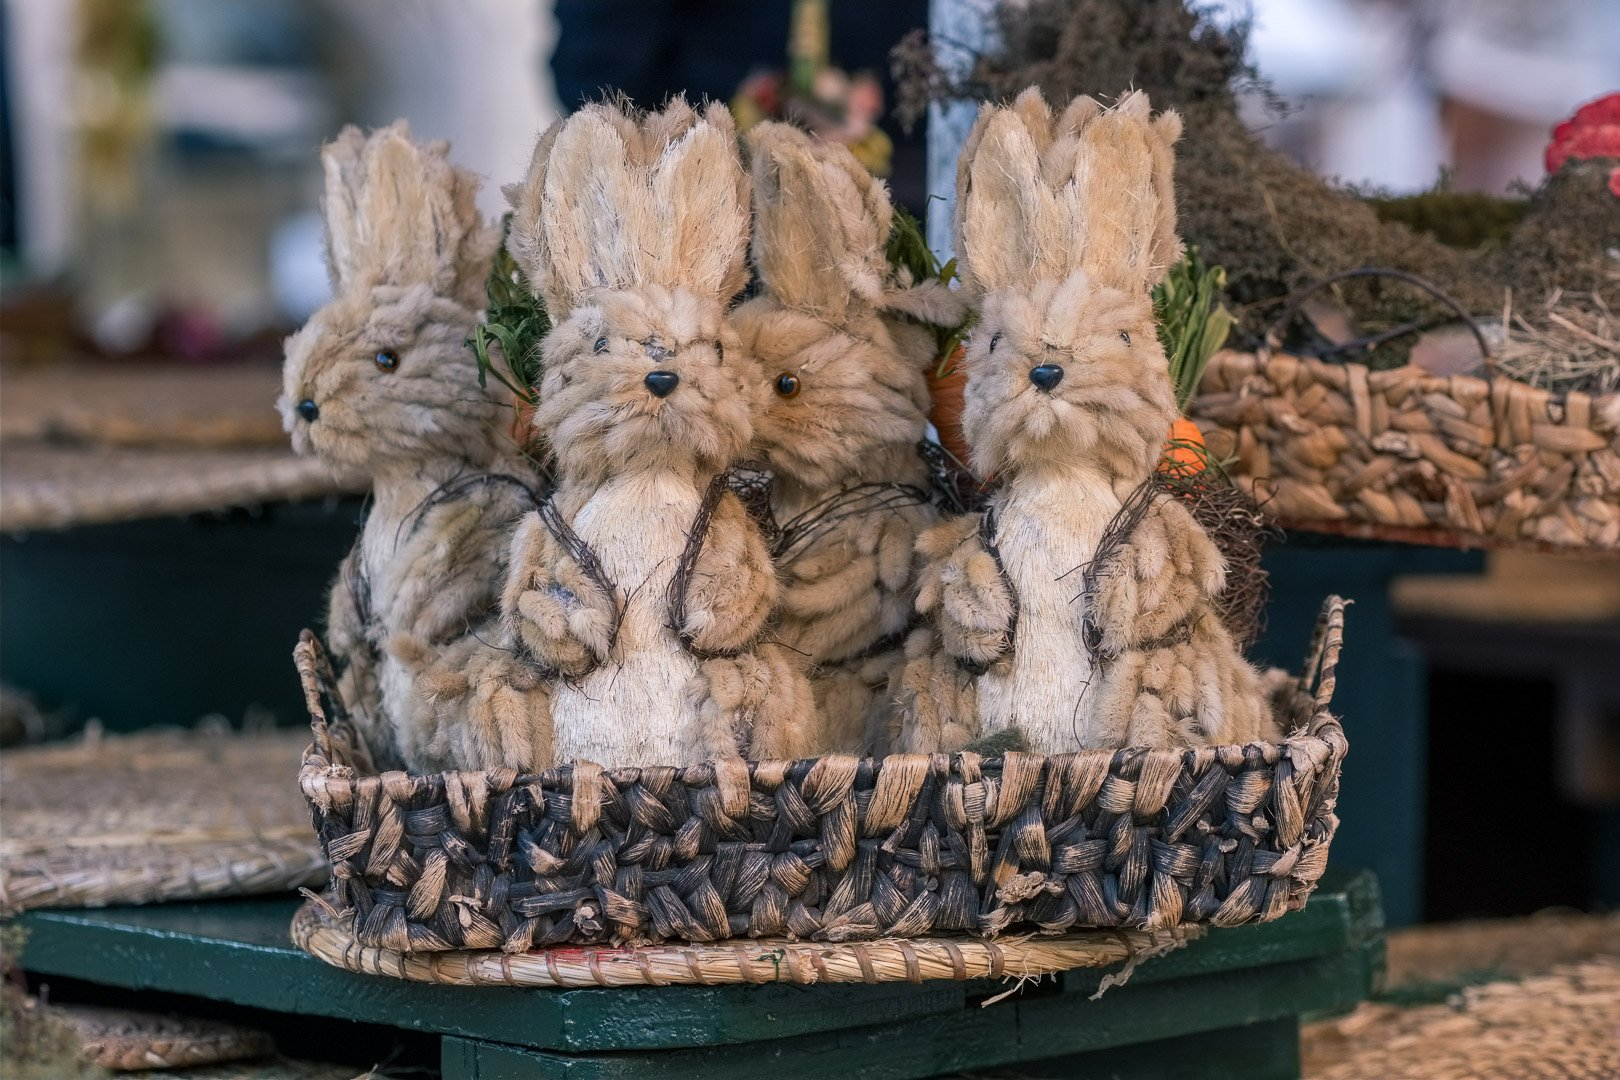 Easter Bunnies in Austria